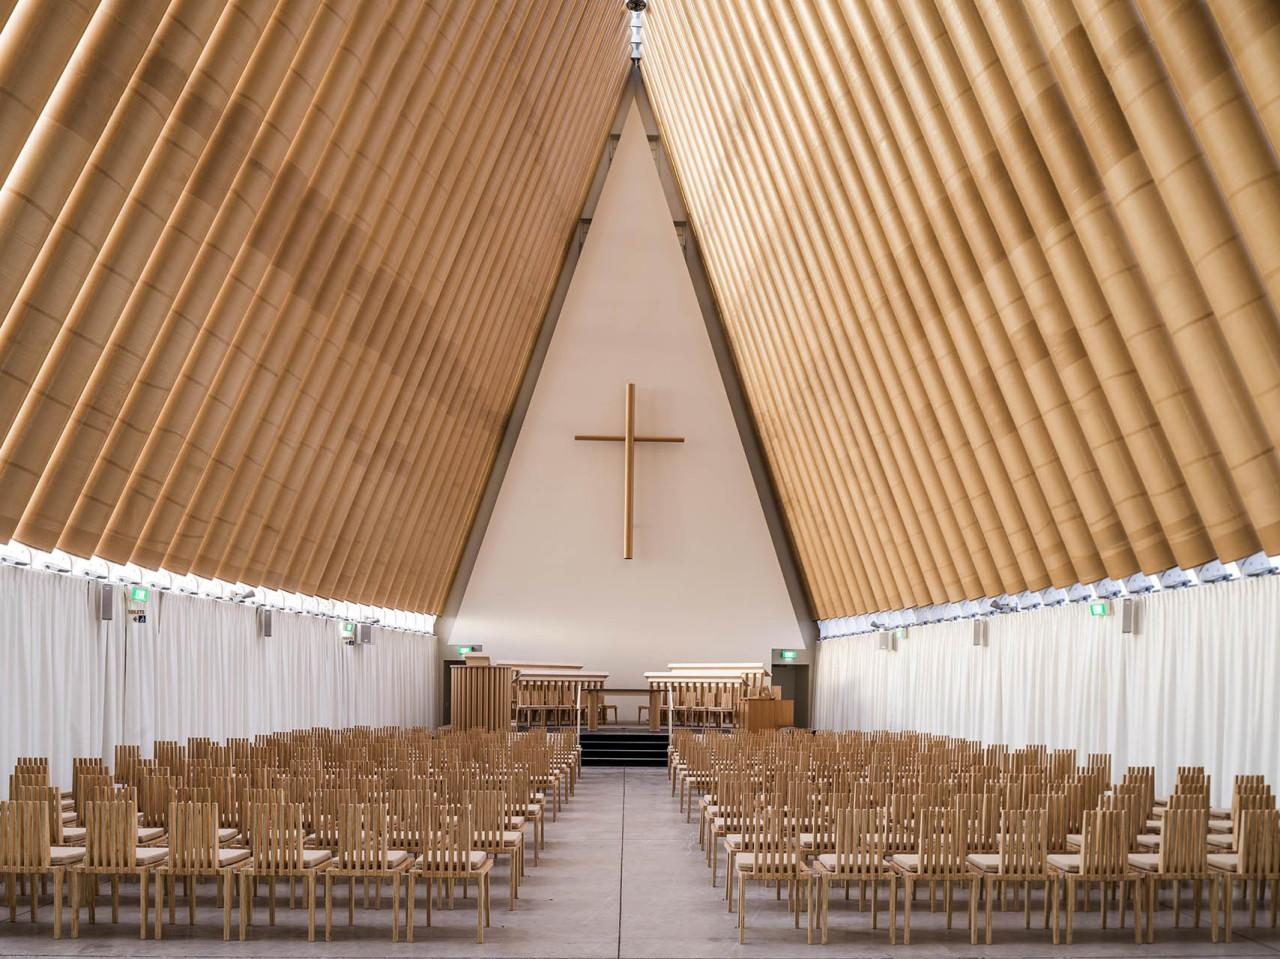 Paper Churches & Beer Crate Houses: Architect Shieru Ban Brings New Meaning to Recycling